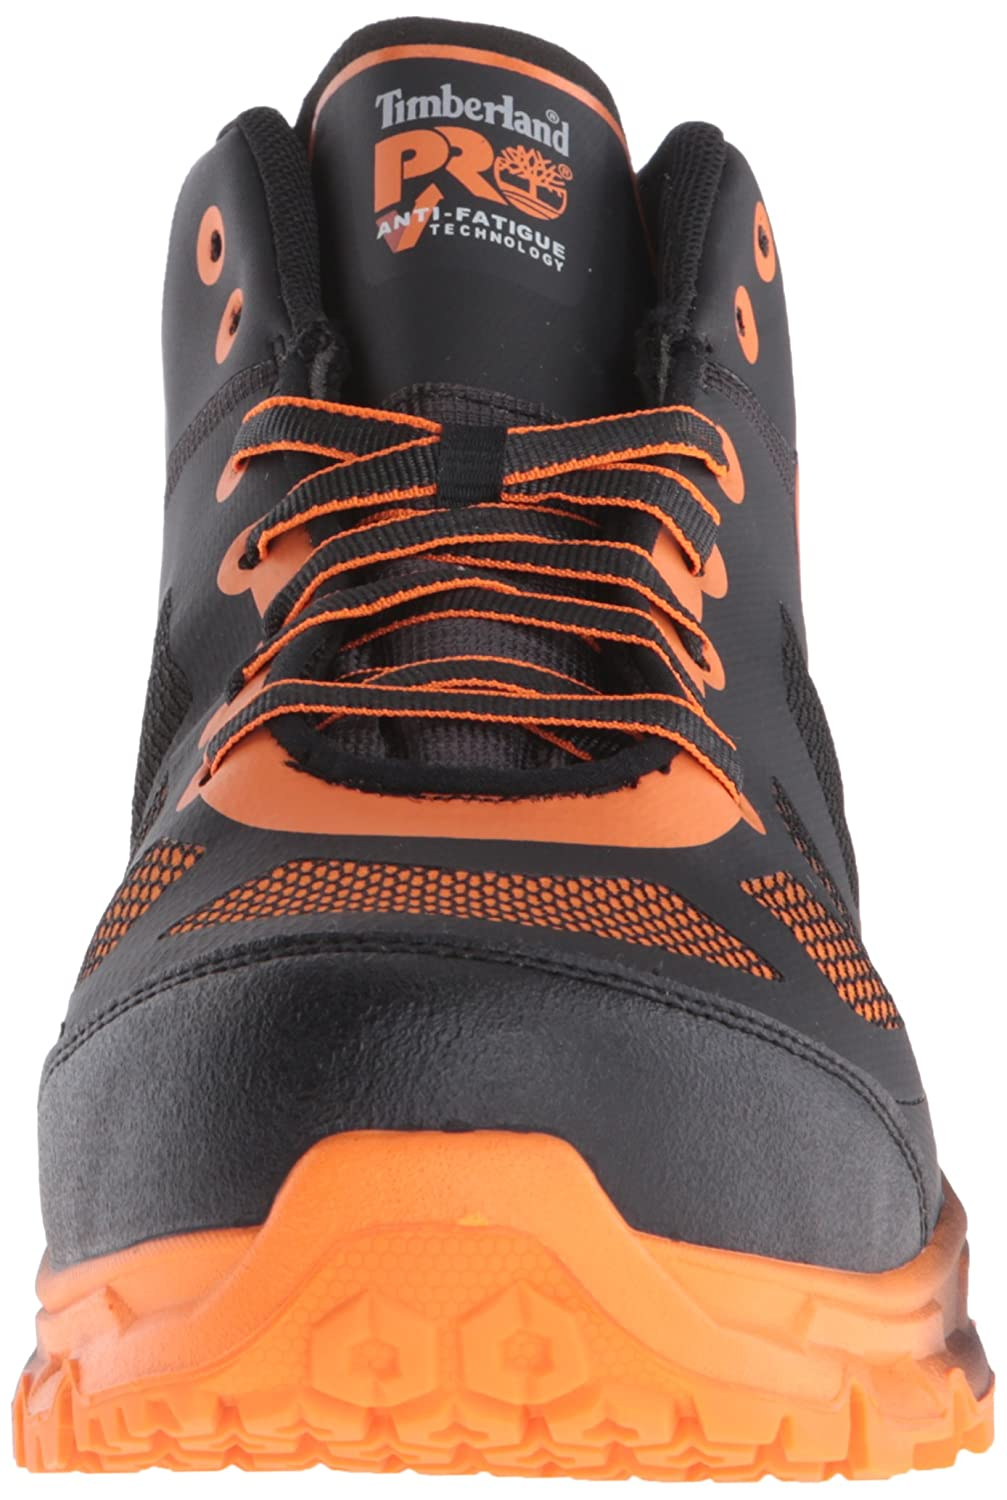 55230cad Amazon.com: Timberland PRO Men's Velocity Alloy Safety-Toe Mid Industrial  and Construction Boot: Shoes